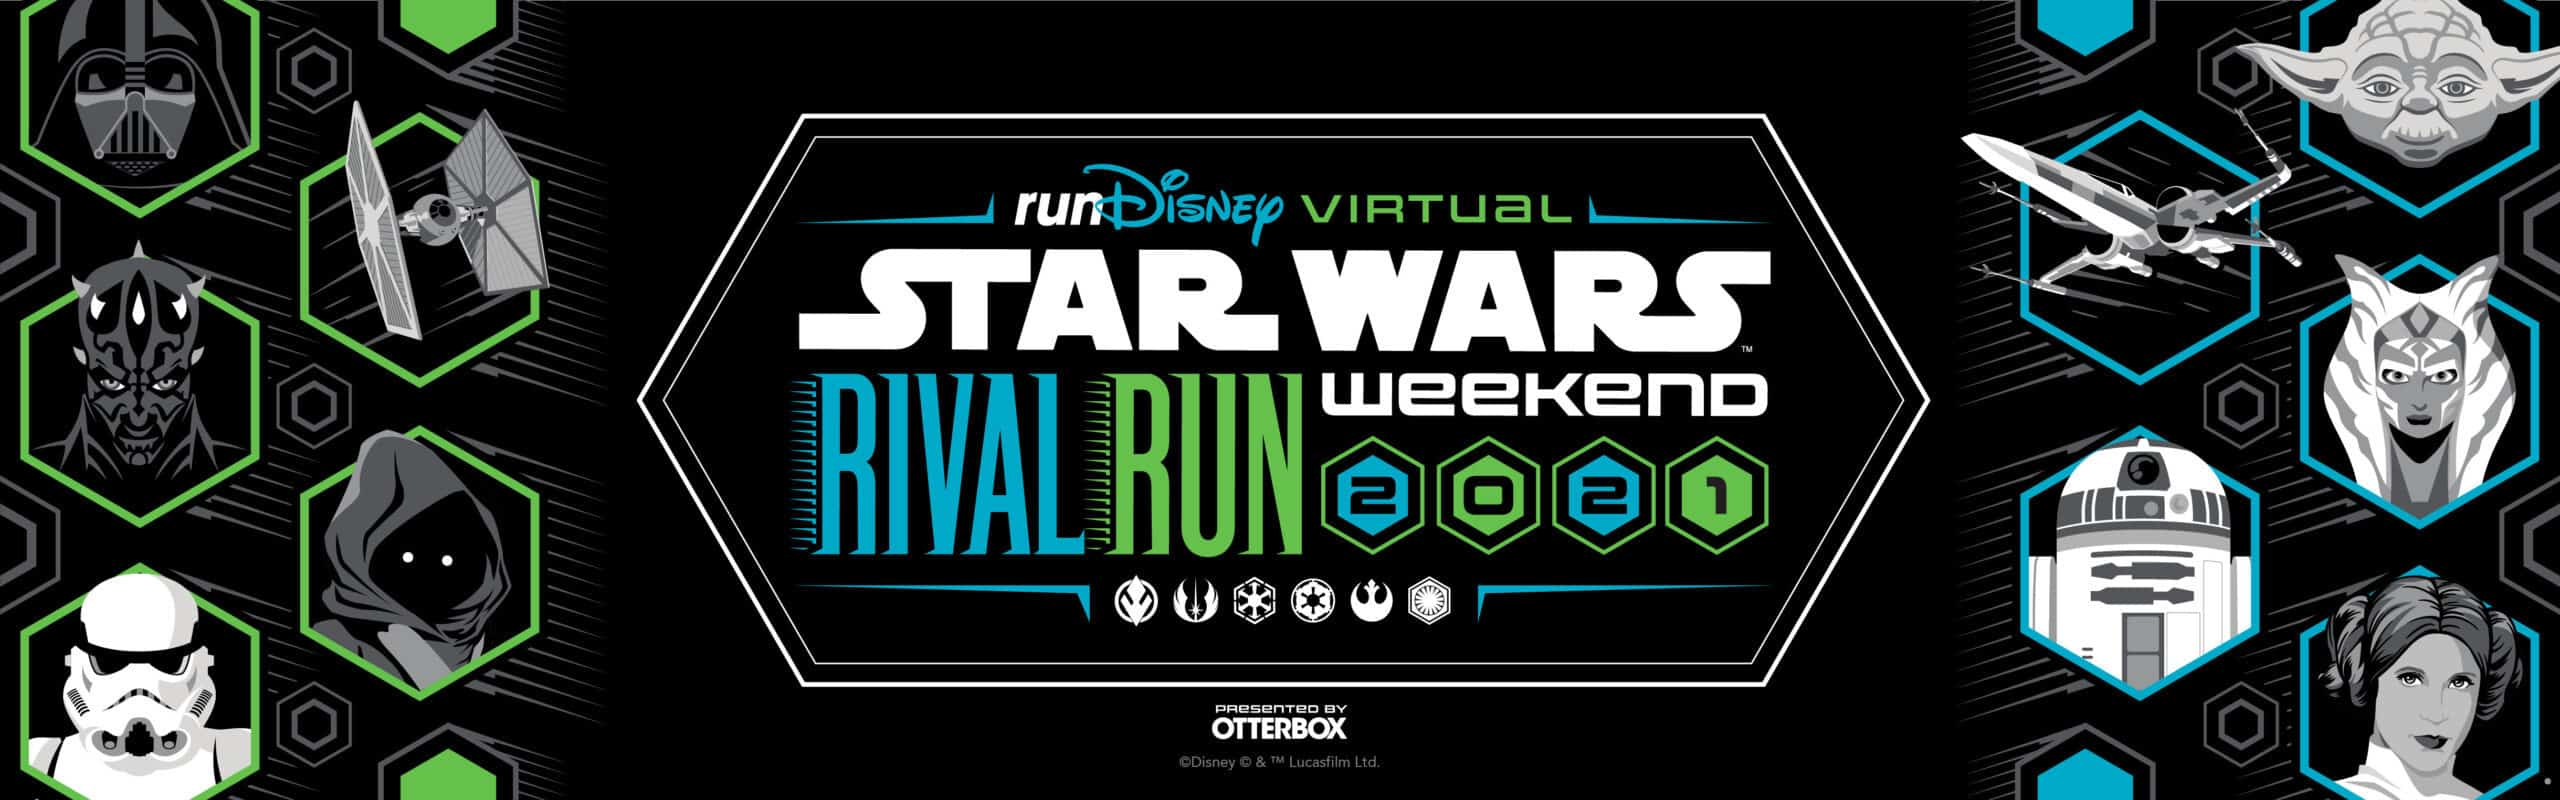 runDisney star wars 2021 options